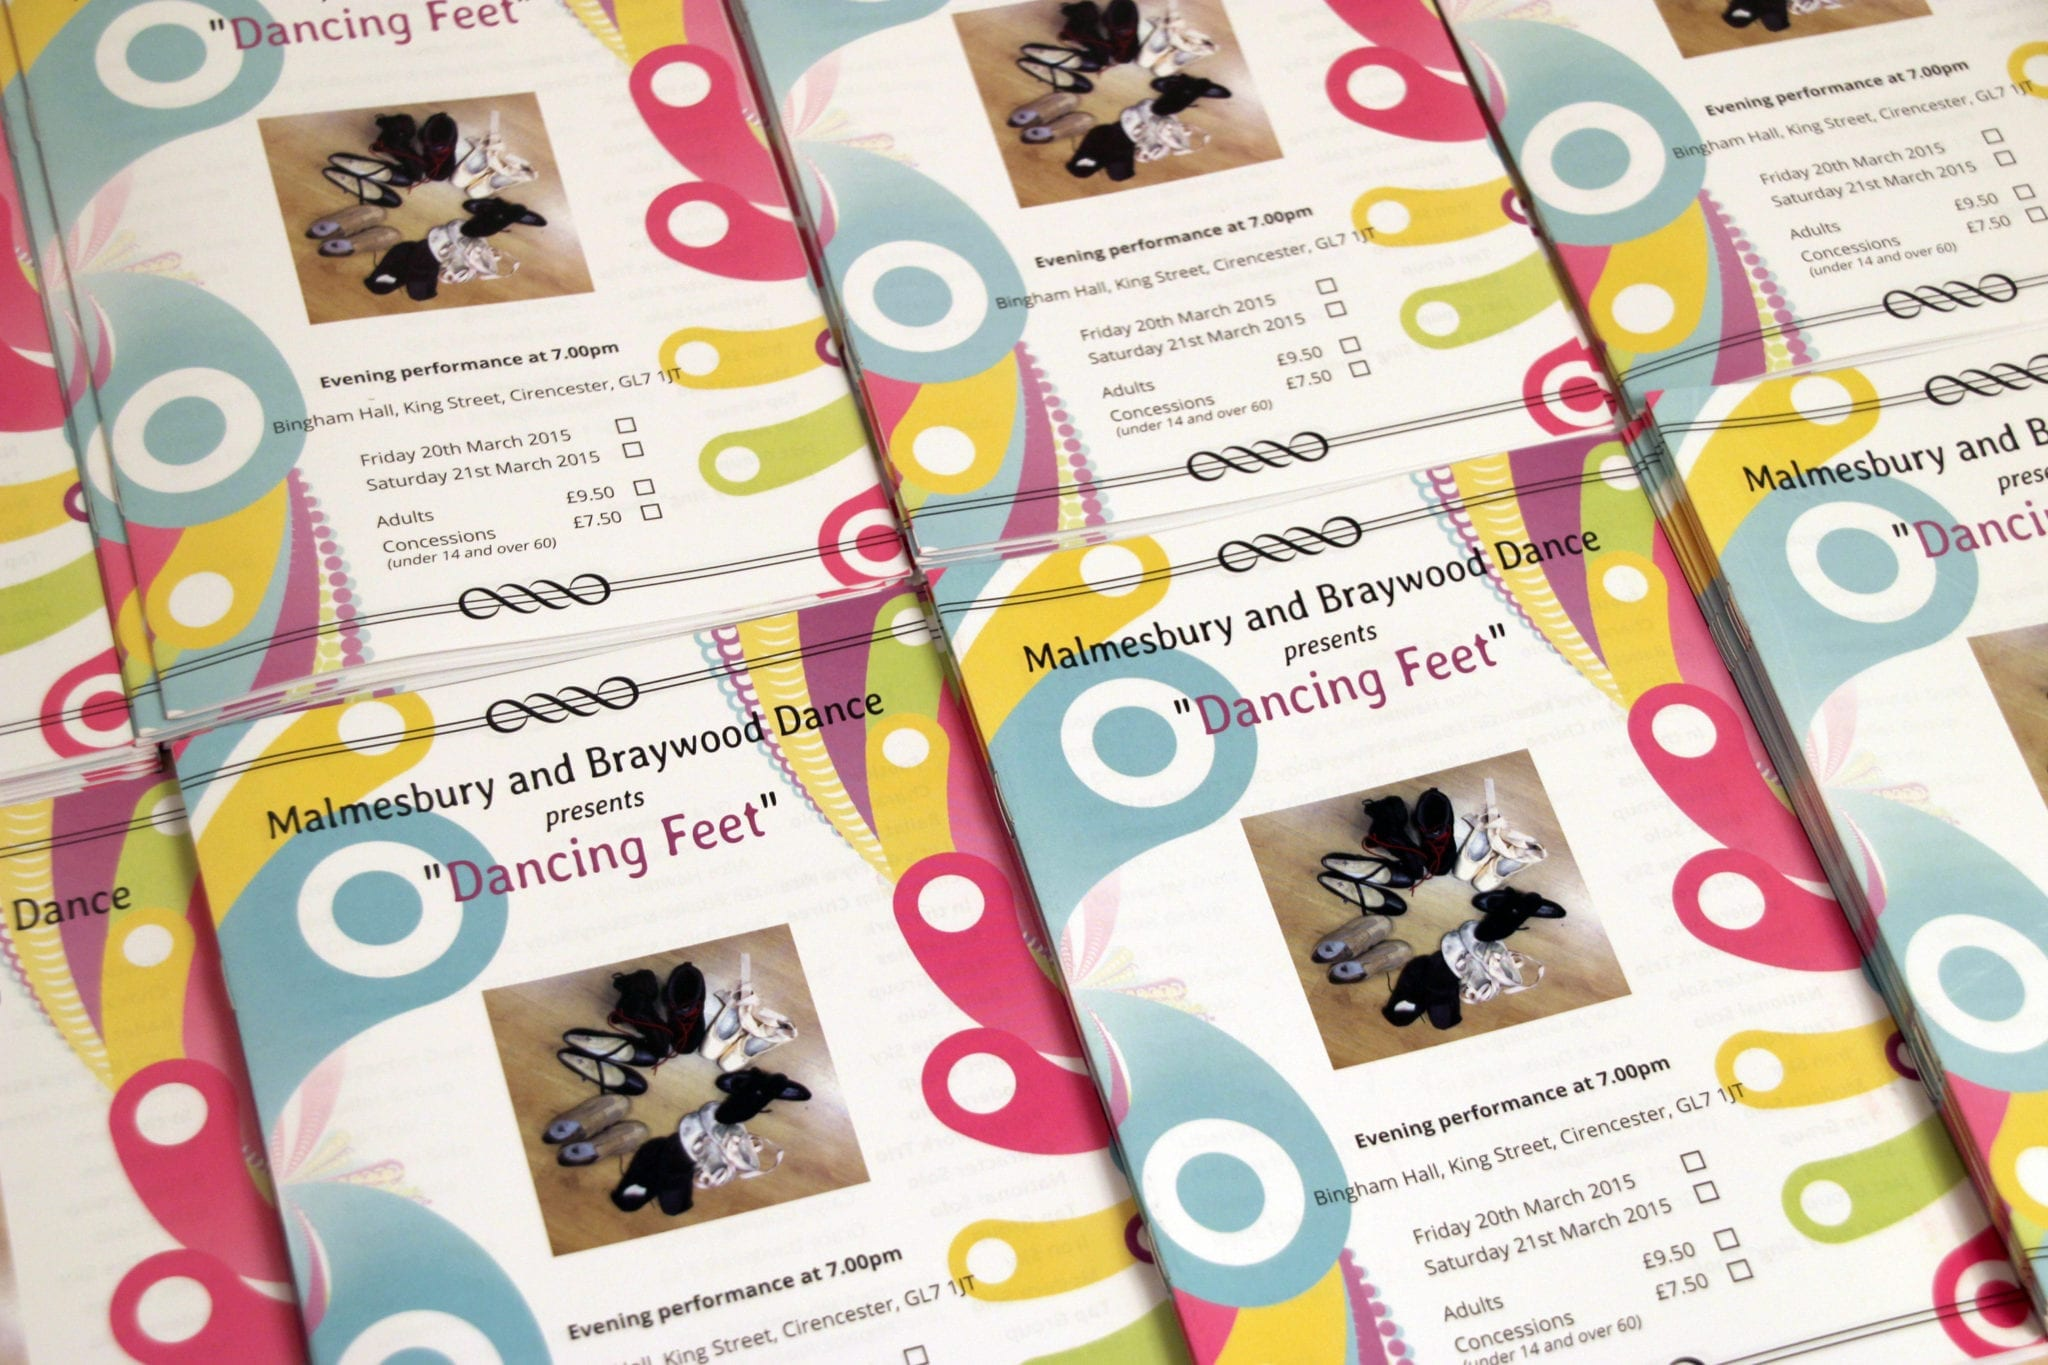 programmes-designed-printed-for-malmesbury-braywood-dance.jpg